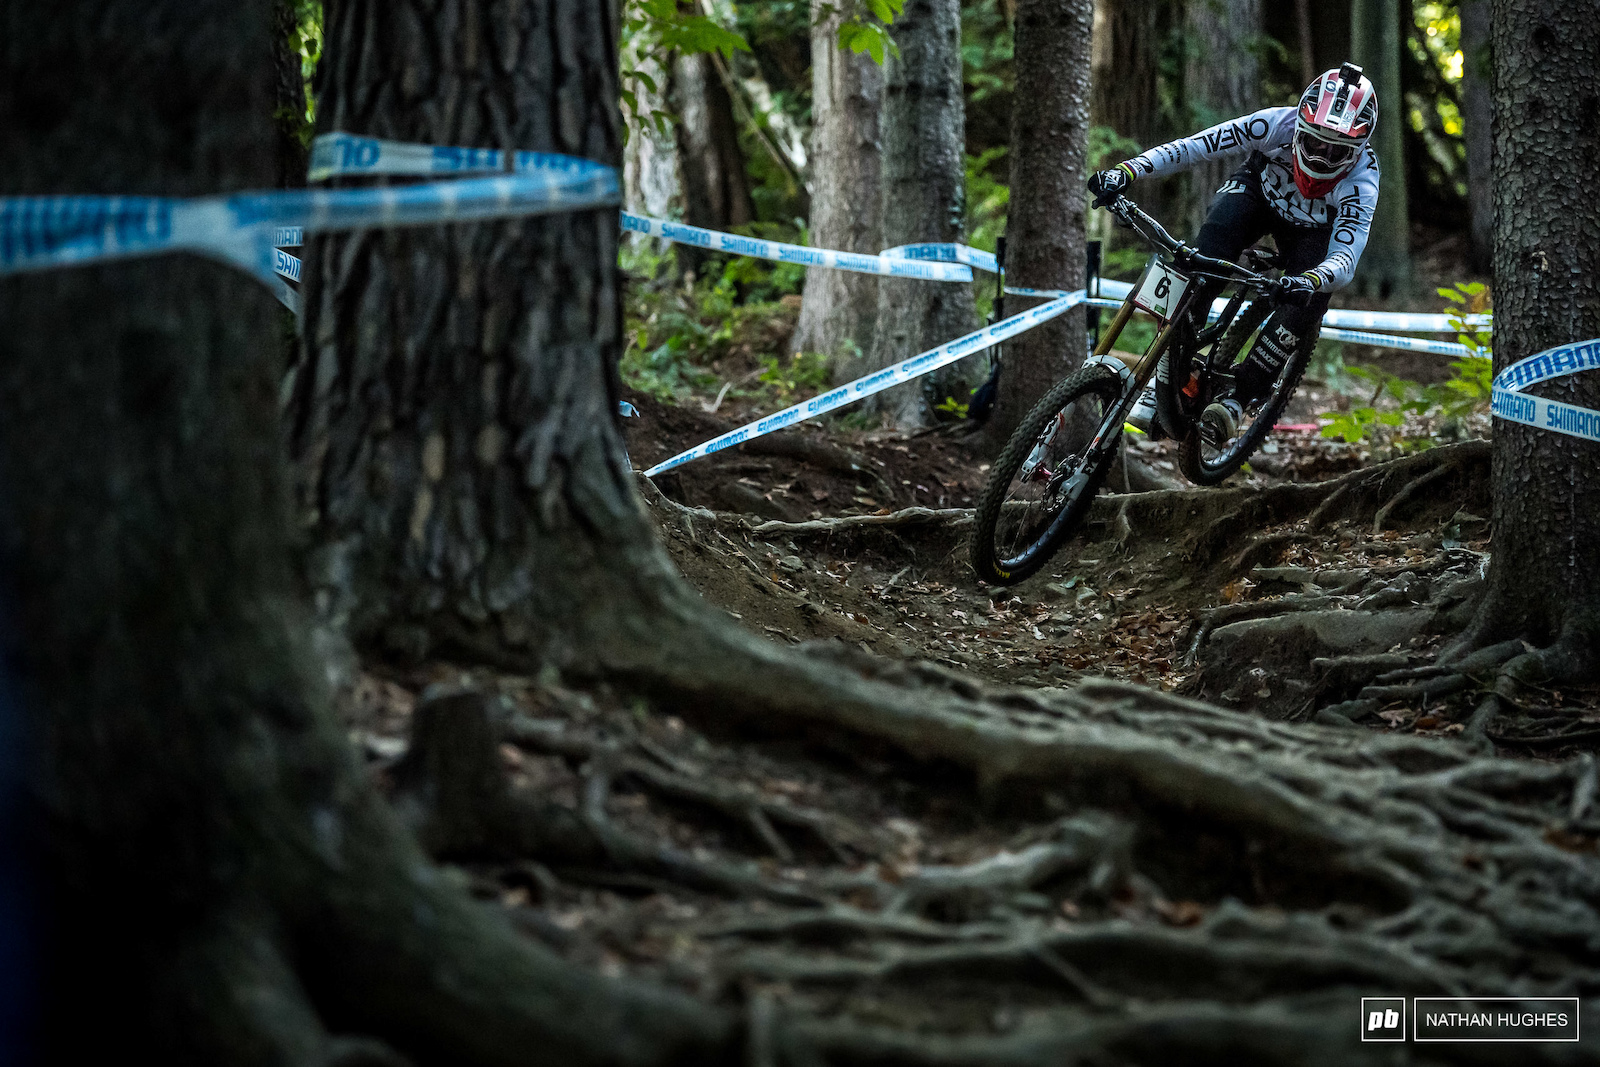 Greg Minnaar holding the throttle open into the root nests mid-track.